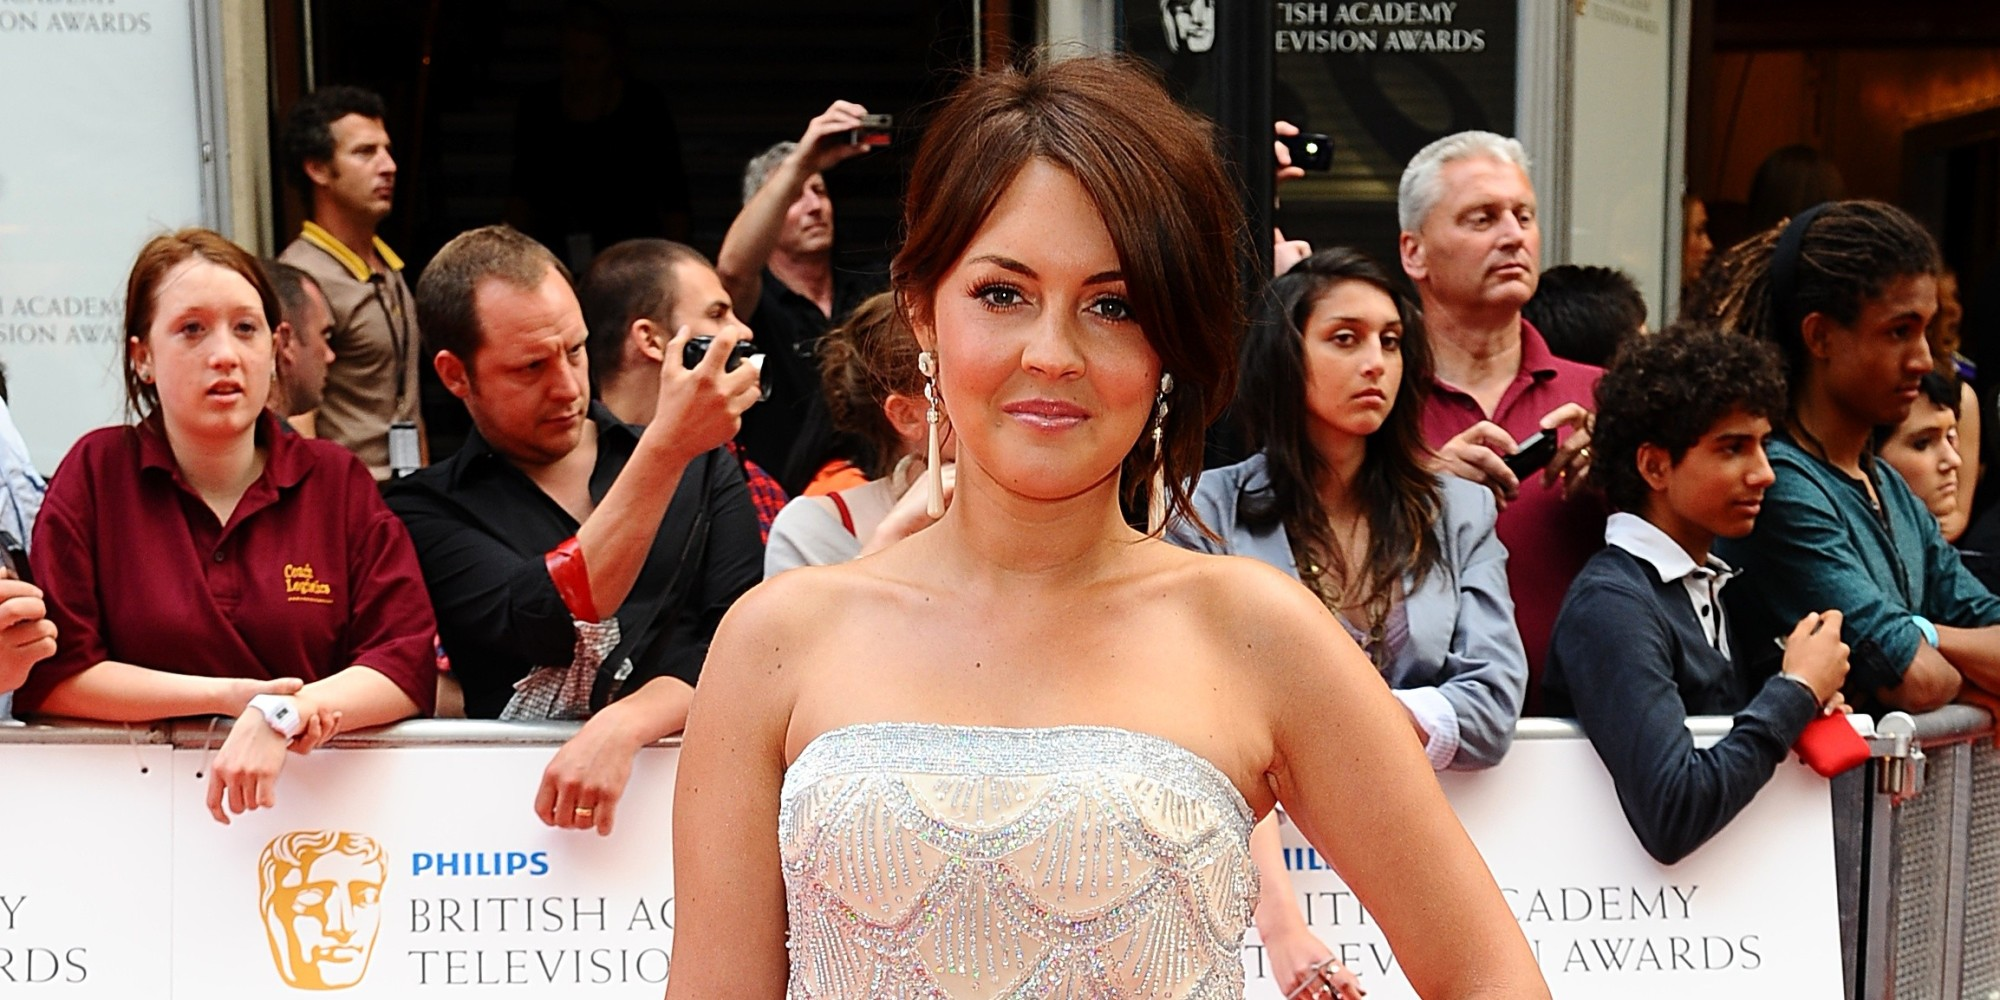 'EastEnders': The Sexiest Ever Stars, From Nigel Harman To Lacey Turner